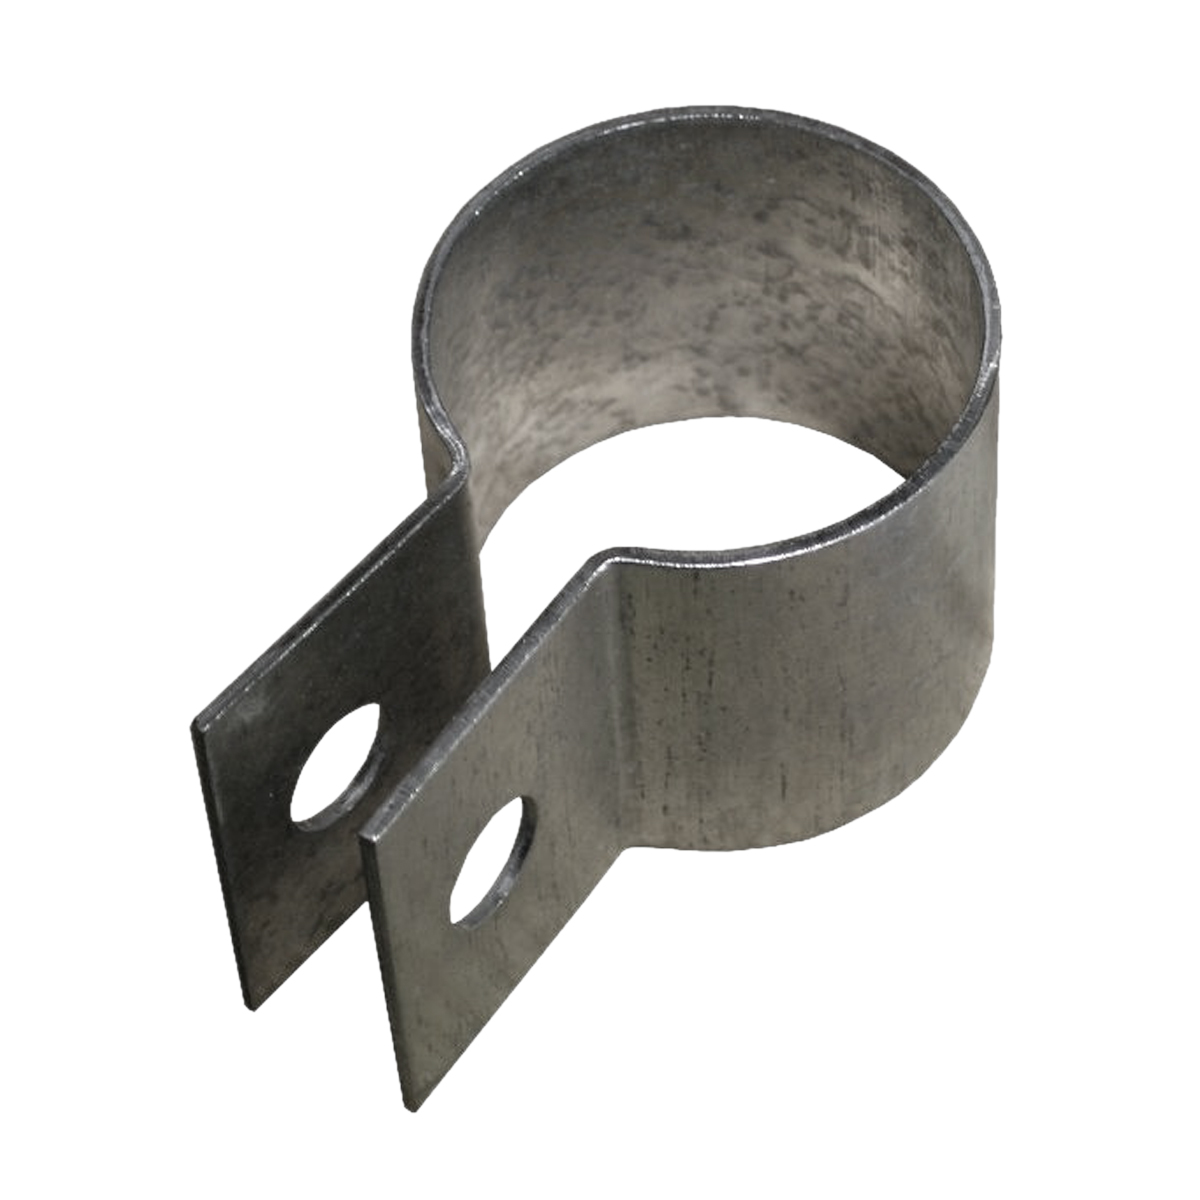 Hose hangers clamps strap and chain assemblies strato